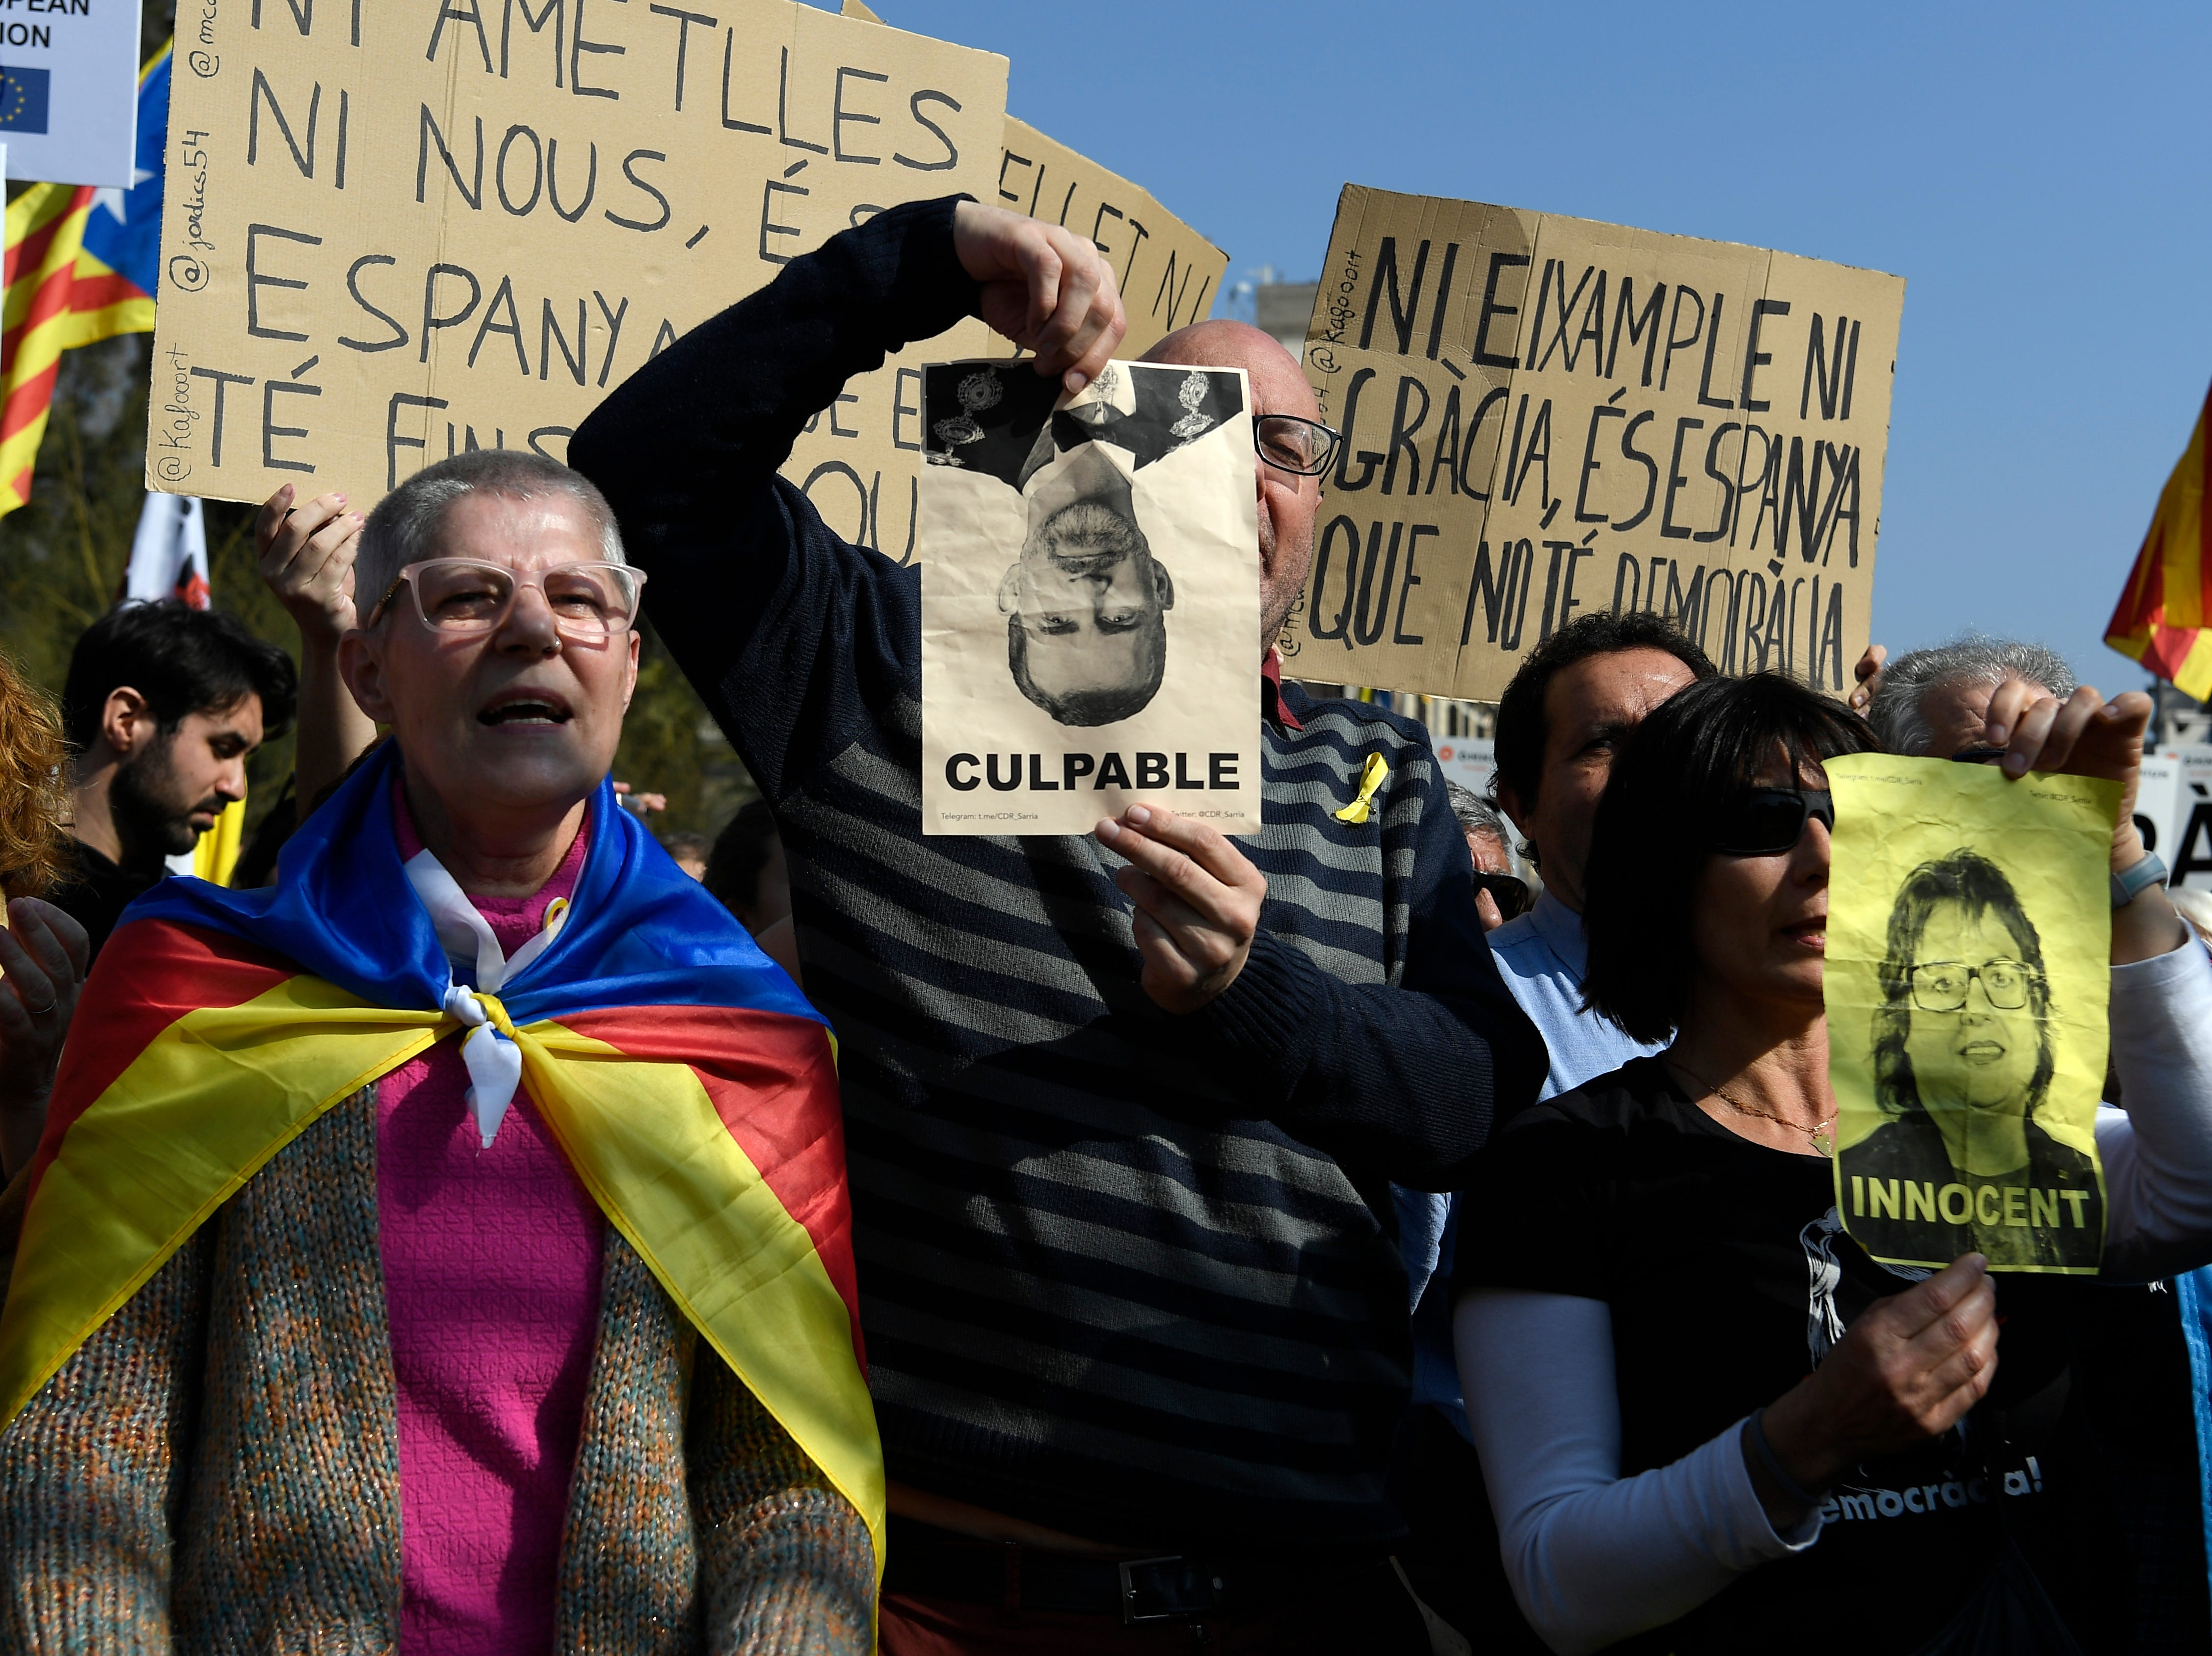 """A man holds a photograph of king Felipe VI with the legend """"culpable"""" during a protest in Barcelona against the trial of former Catalan separatist leaders in Madrid, during a strike day on Feb. 21, 2019."""